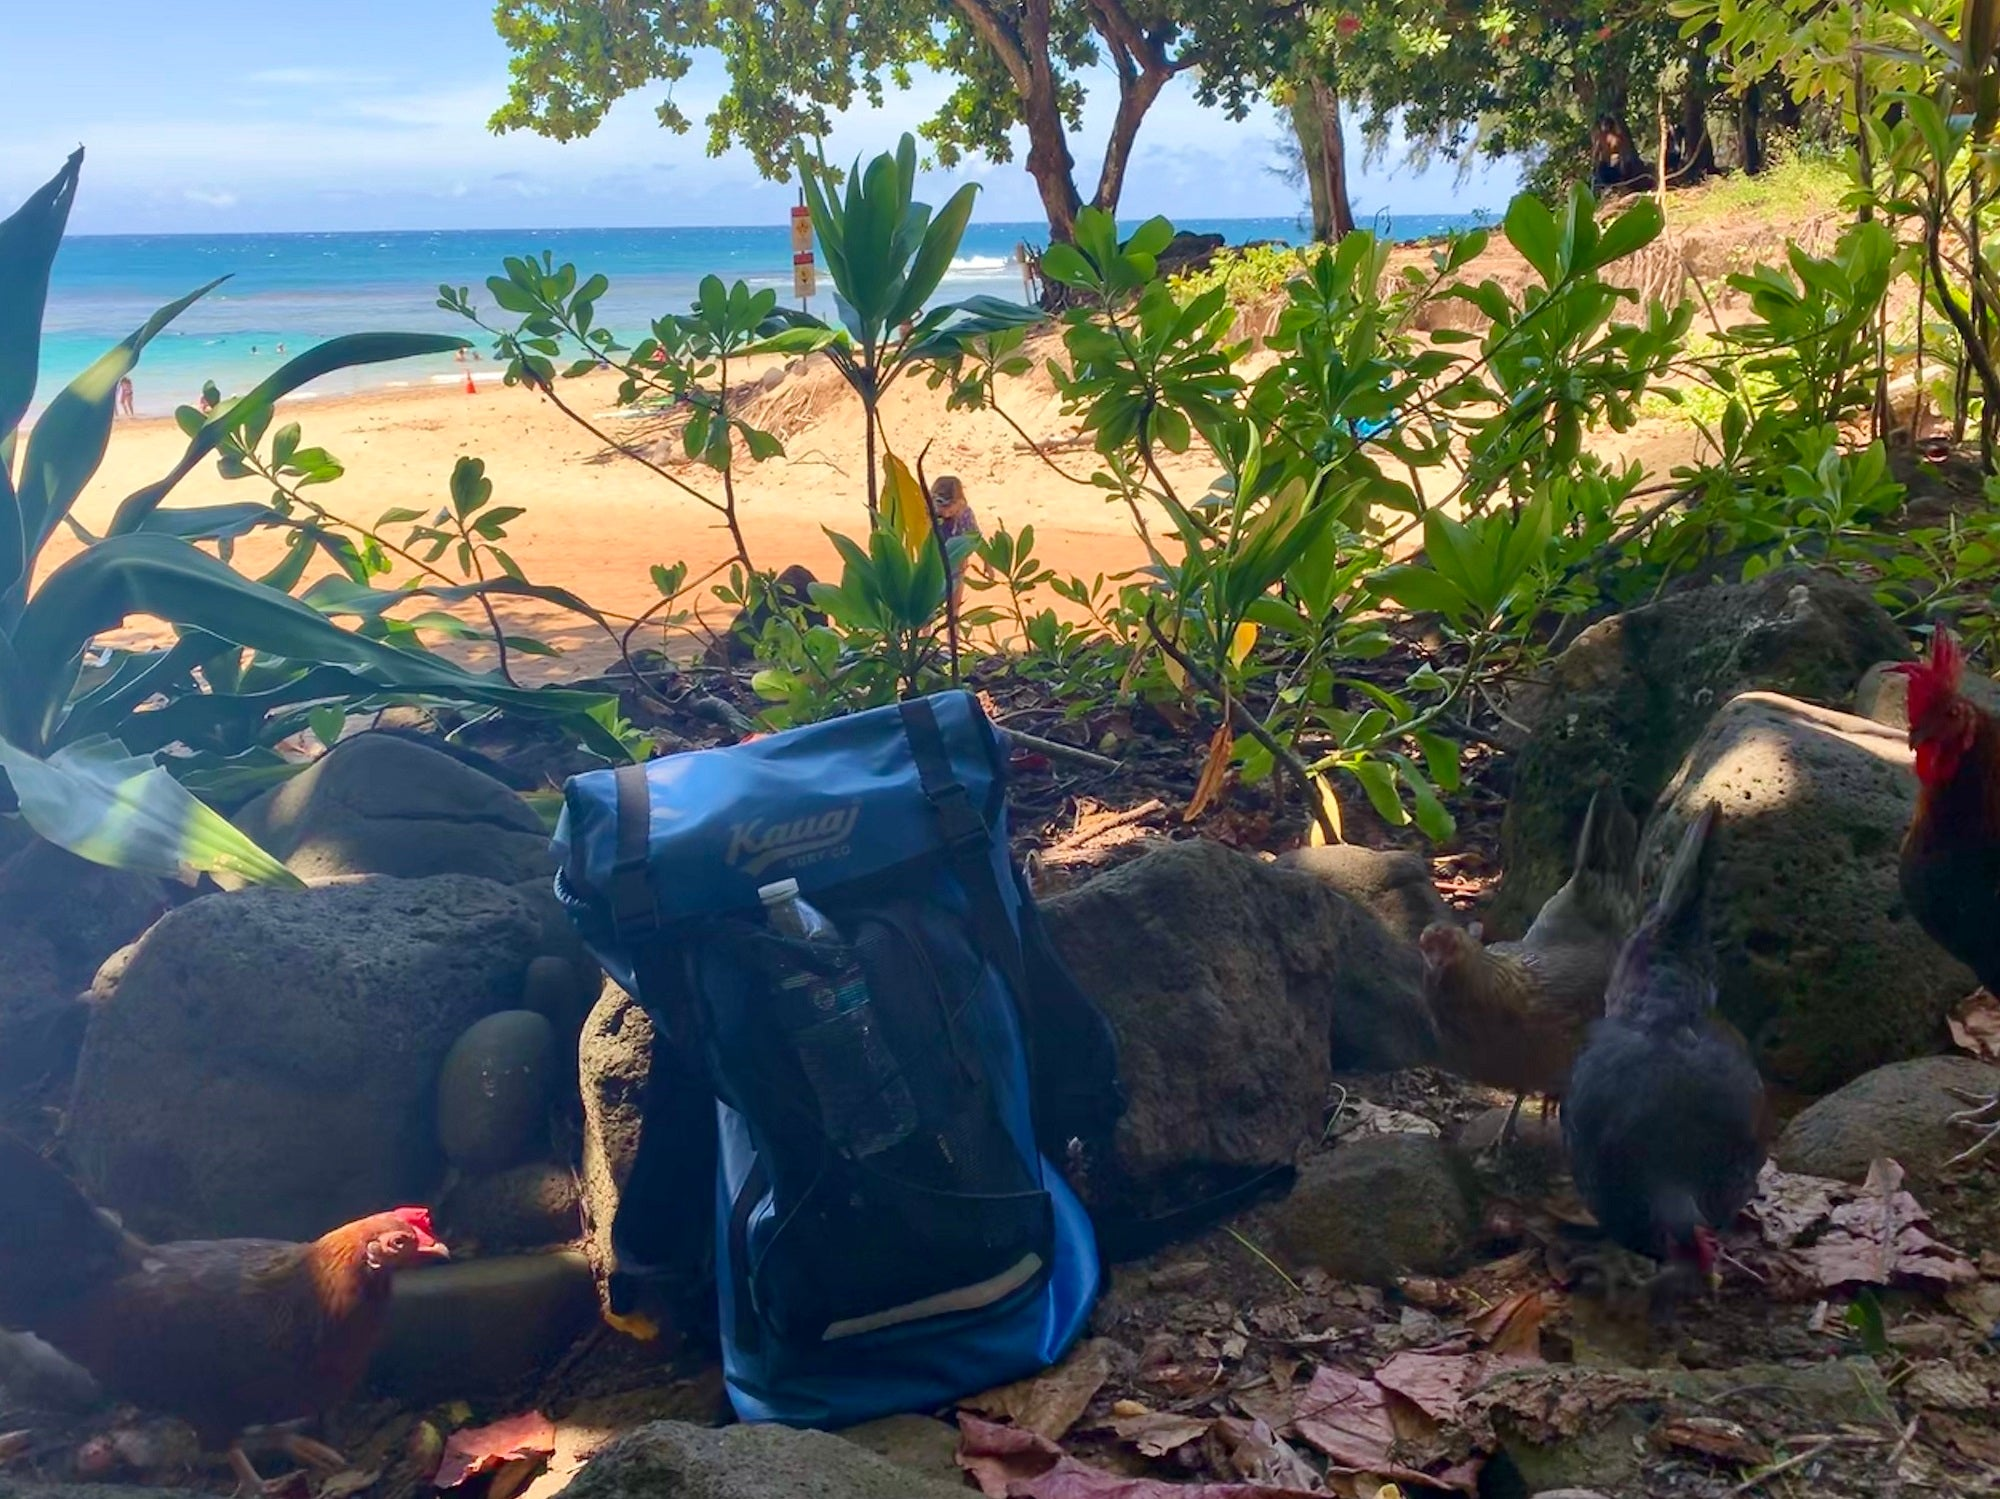 Kauai Chickens Waterproof Backpack